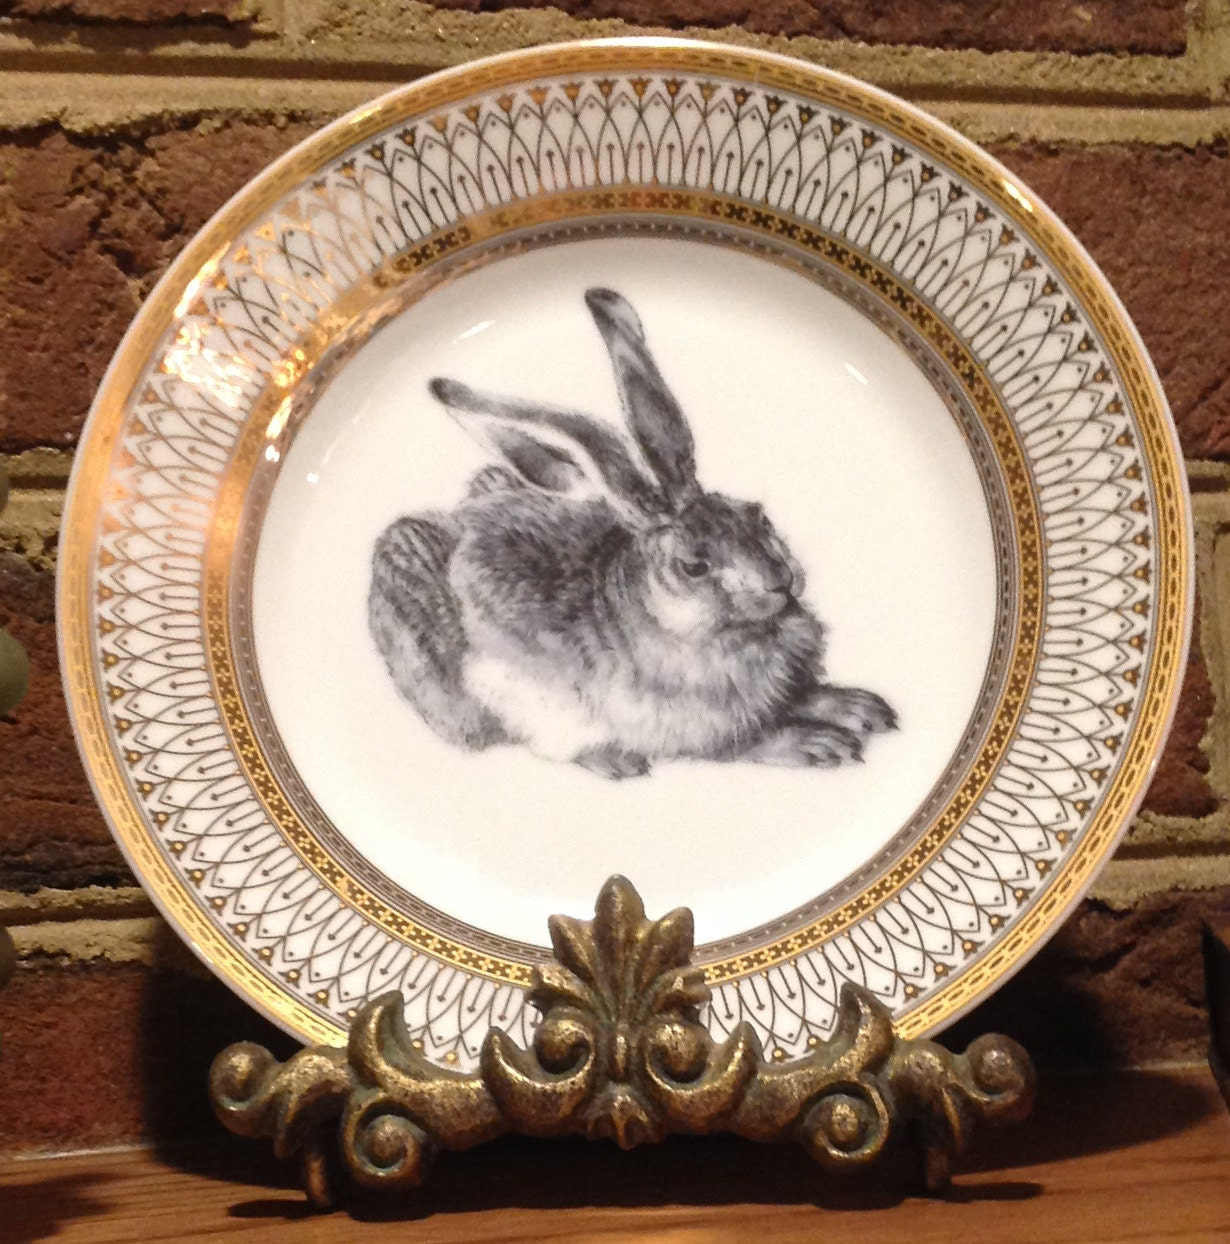 & Rabbit Hare Gold Silver Dinnerware/Plates/Dishes Easter